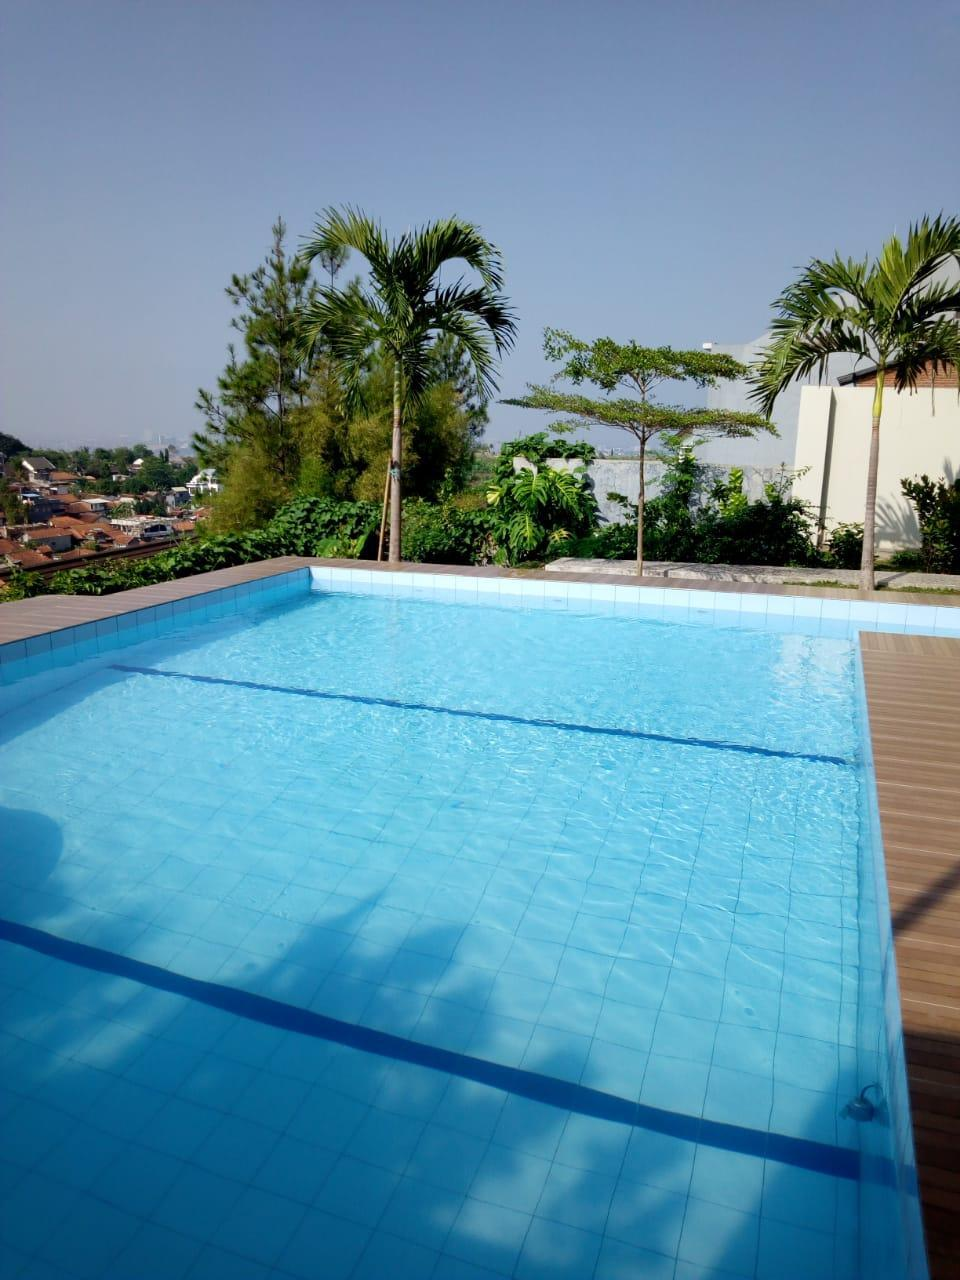 Emway Villas private pool in the middleof the hill